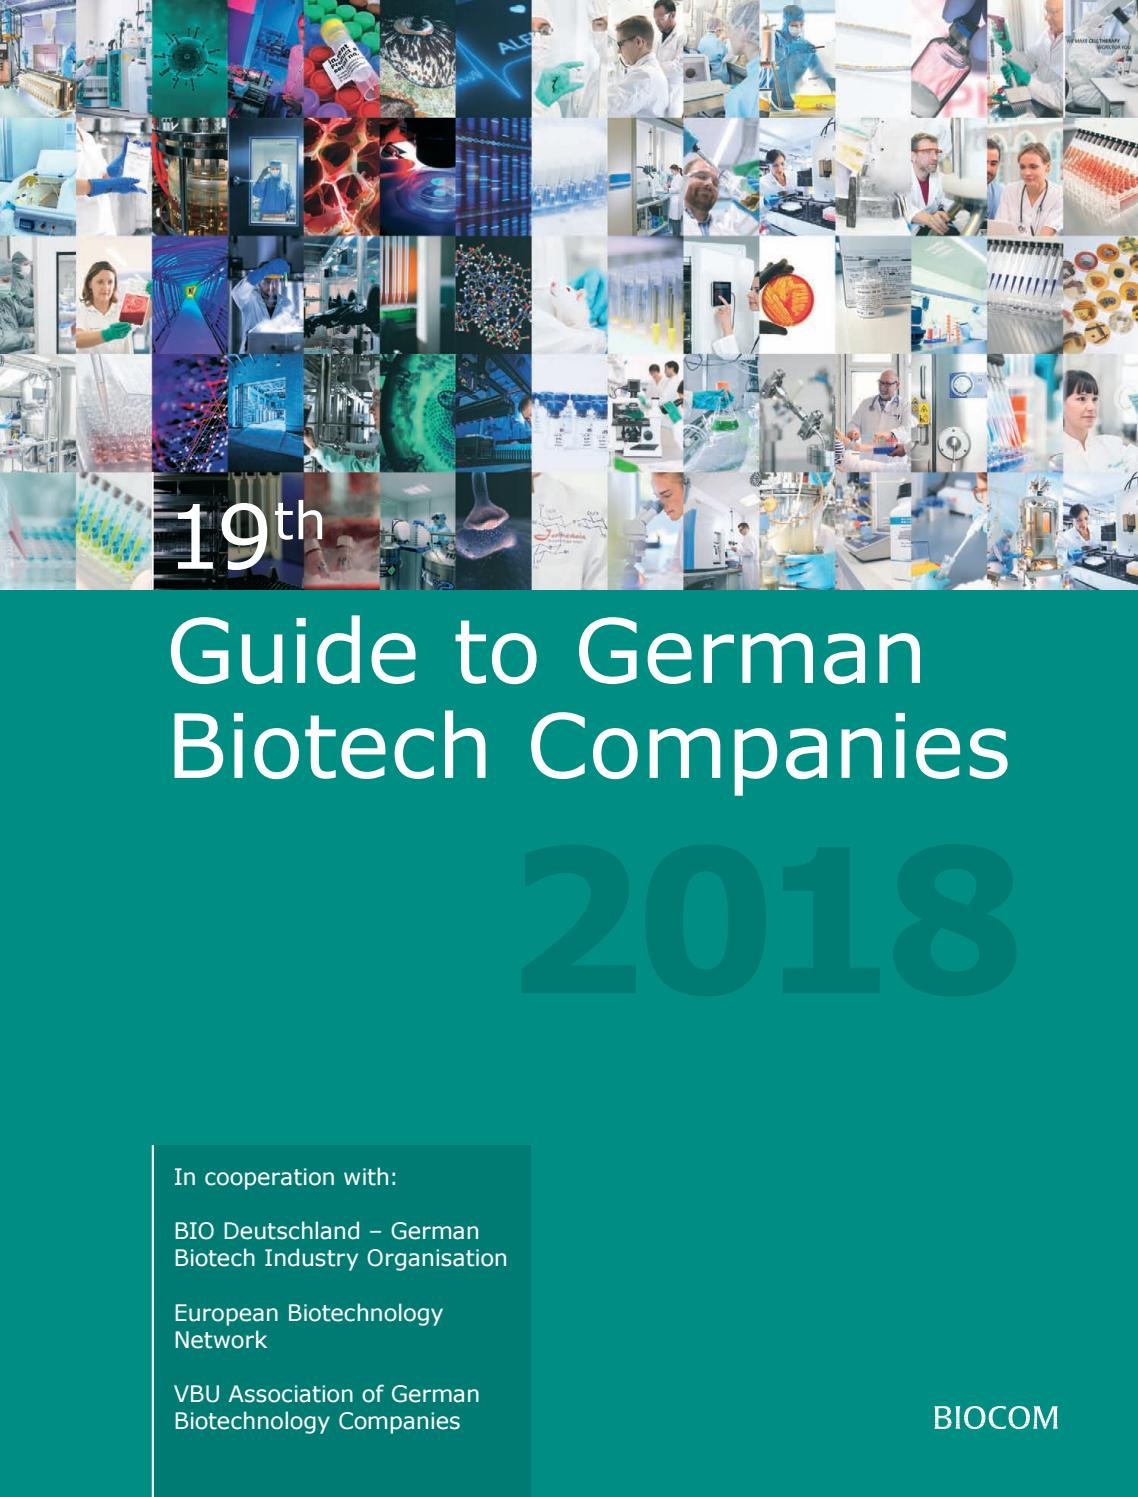 Cash Pool Fellbach 19th Guide To German Biotech Companies 2018 By Biocom Ag Issuu